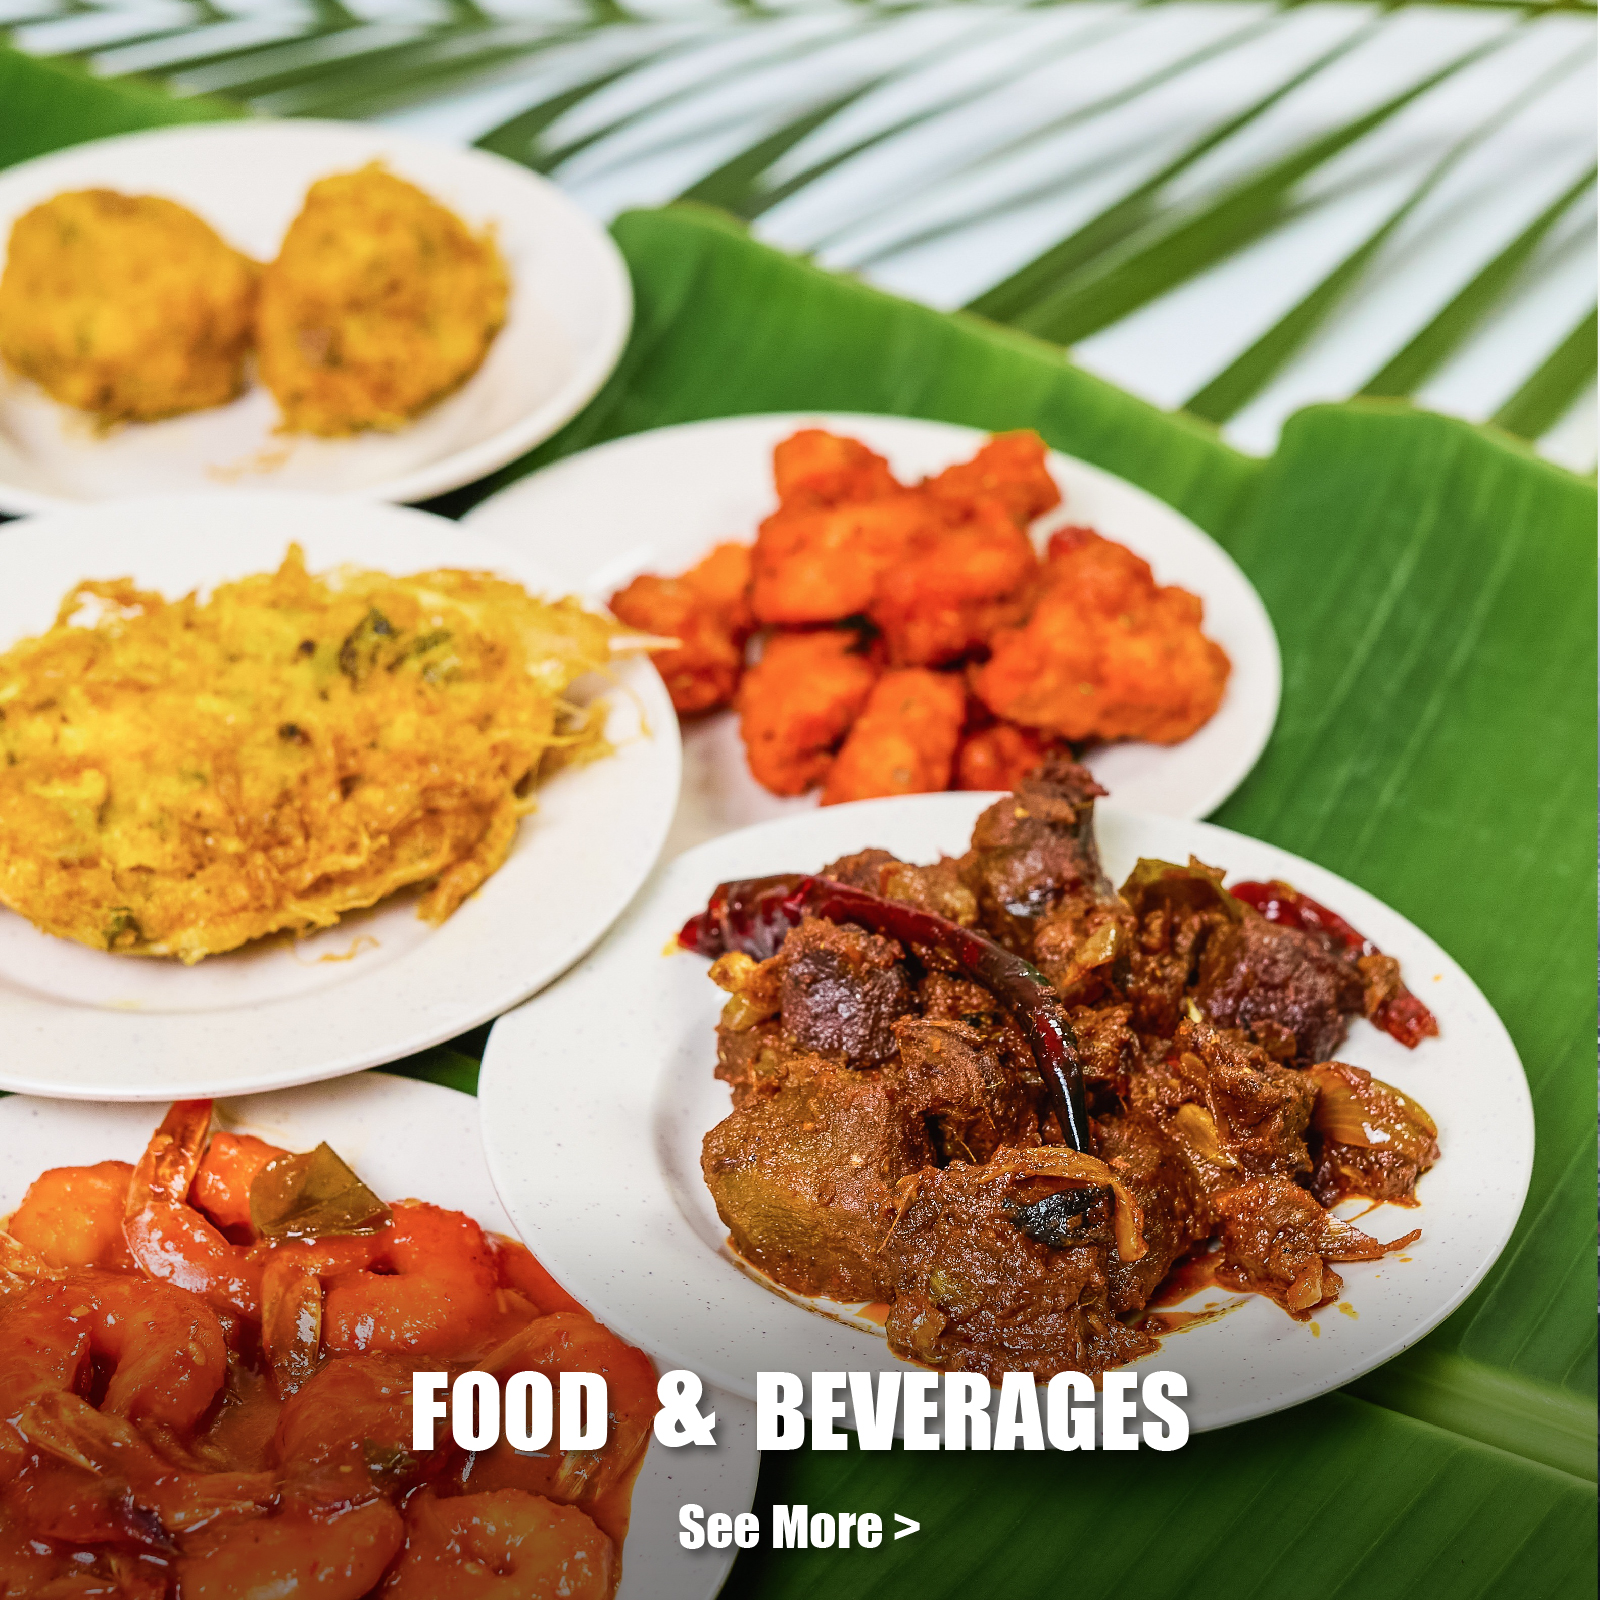 Food and Beverages V3 - Our Businesses Section - Homepage